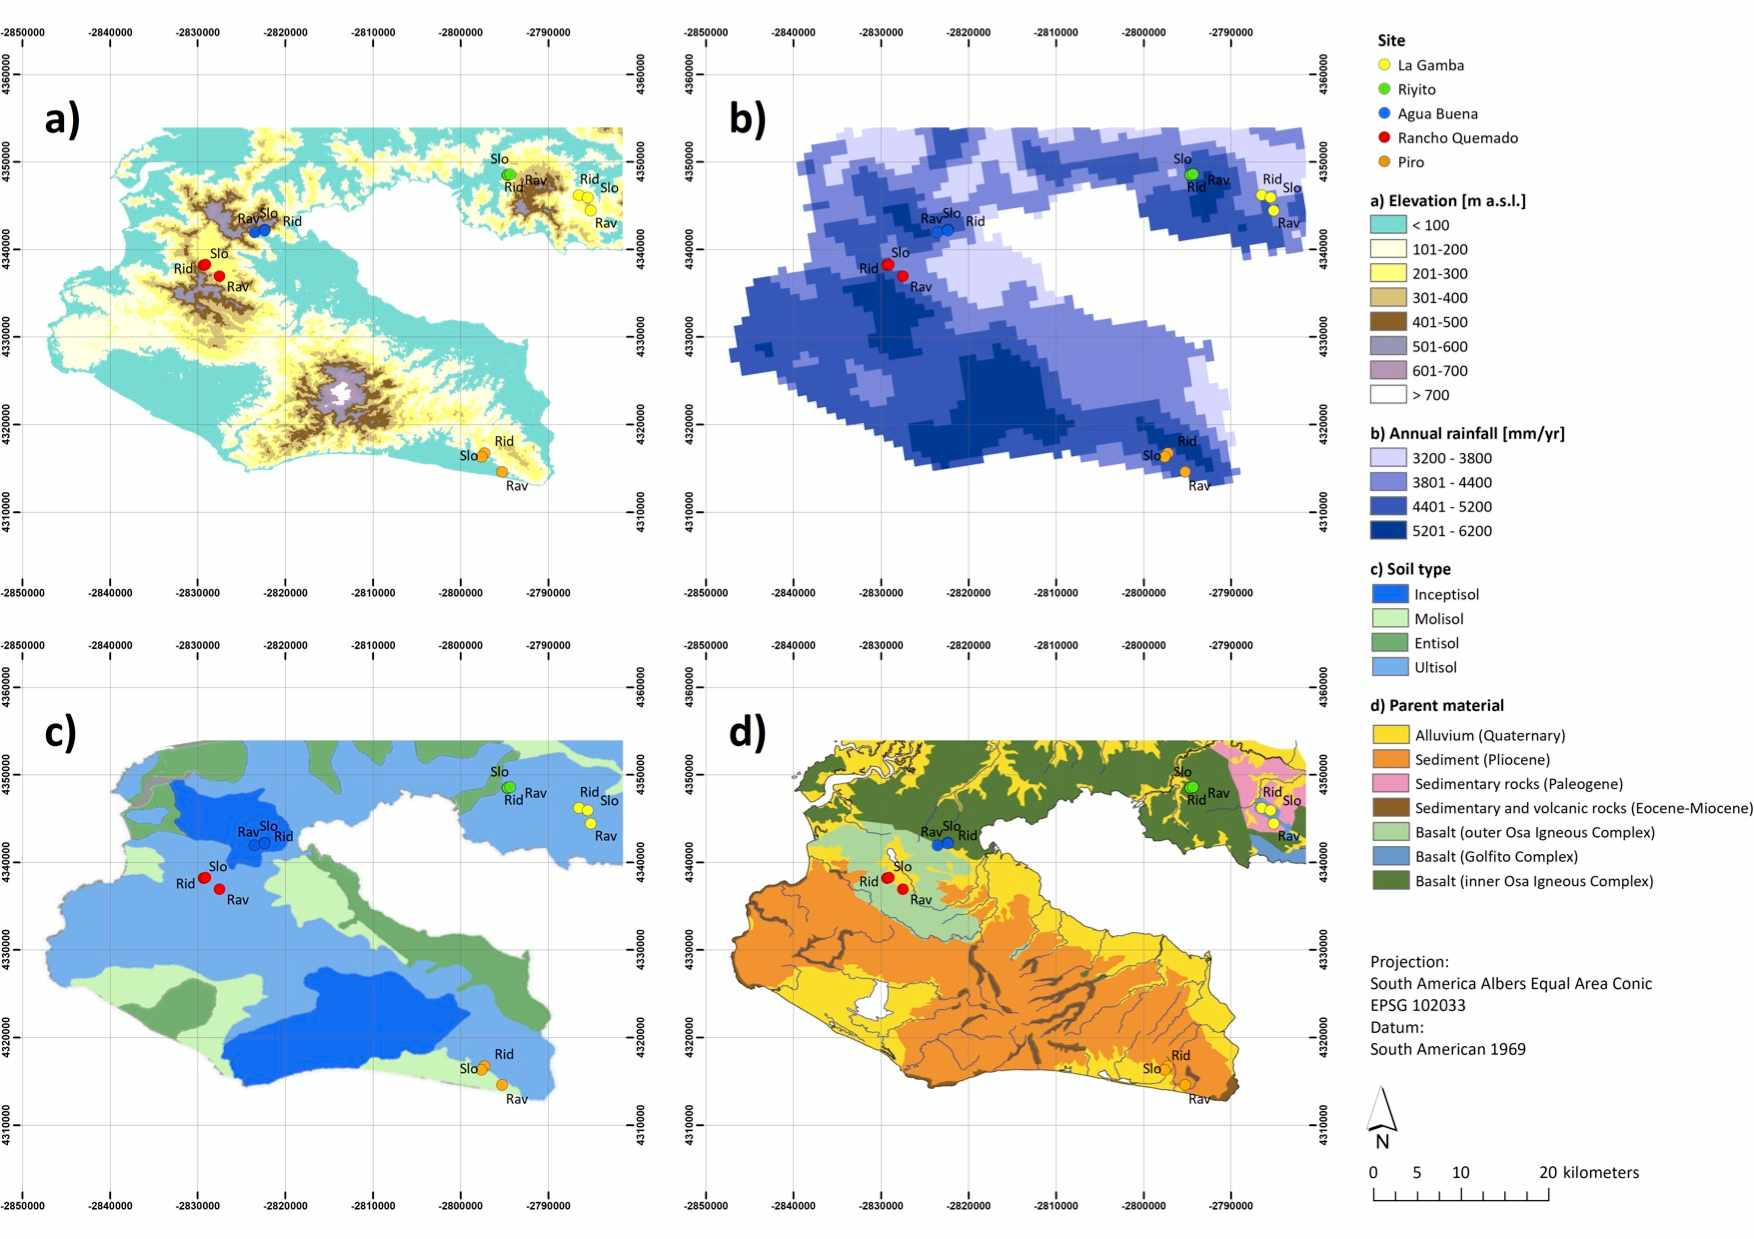 Environmental gradients and location of forest plots situated in the Área de Conservación Osa (ACOSA), southwestern Costa Rica (8°41´N, 83° 13´ W). Upper left panel (a): Elevation (m a.s.l.) based on SRTM ASTER data. Upper right panel (b): Annual rainfall (mm yr-1) based on data from Climatologies at high resolution for the earth's land surface areas. Lower left panel (c): Soil Type based on the map presented in Taylor et al. (2015). Lower right panel (d): Parent material based on an updated regional map first presented in Buchs et al. (2009). Point colors indicate respective location of forest plots spread across the study region. Geographic locations are depicted as colored symbols, i.e. La Gamba (yellow symbols), Riyito (green symbols), Agua Buena (blue symbols), Rancho Quemado (red symbols), and Piro (orange symbols). Forest habitat types are indicated by textual abbreviations, i.e. ridge forest plots (Rid), slope forest plots (Slo), and ravine forest plots (Rav) located in the Golfo Dulce region, southern Costa Rica.